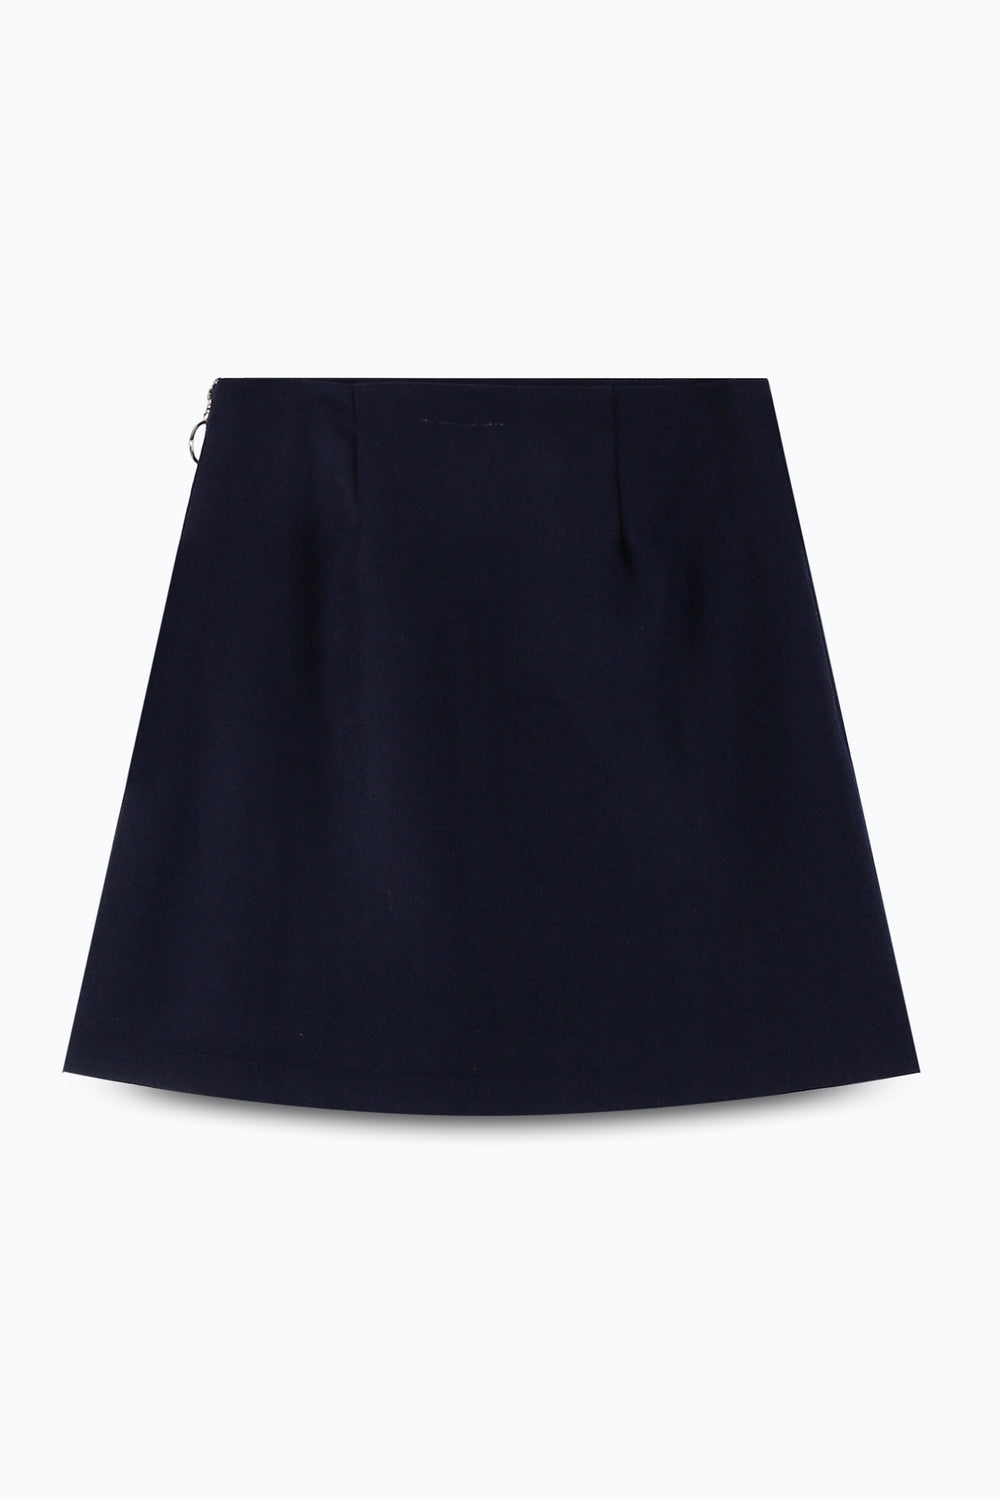 ZIZTAR Hide & Seek Mini Skirt - ZIZTAR